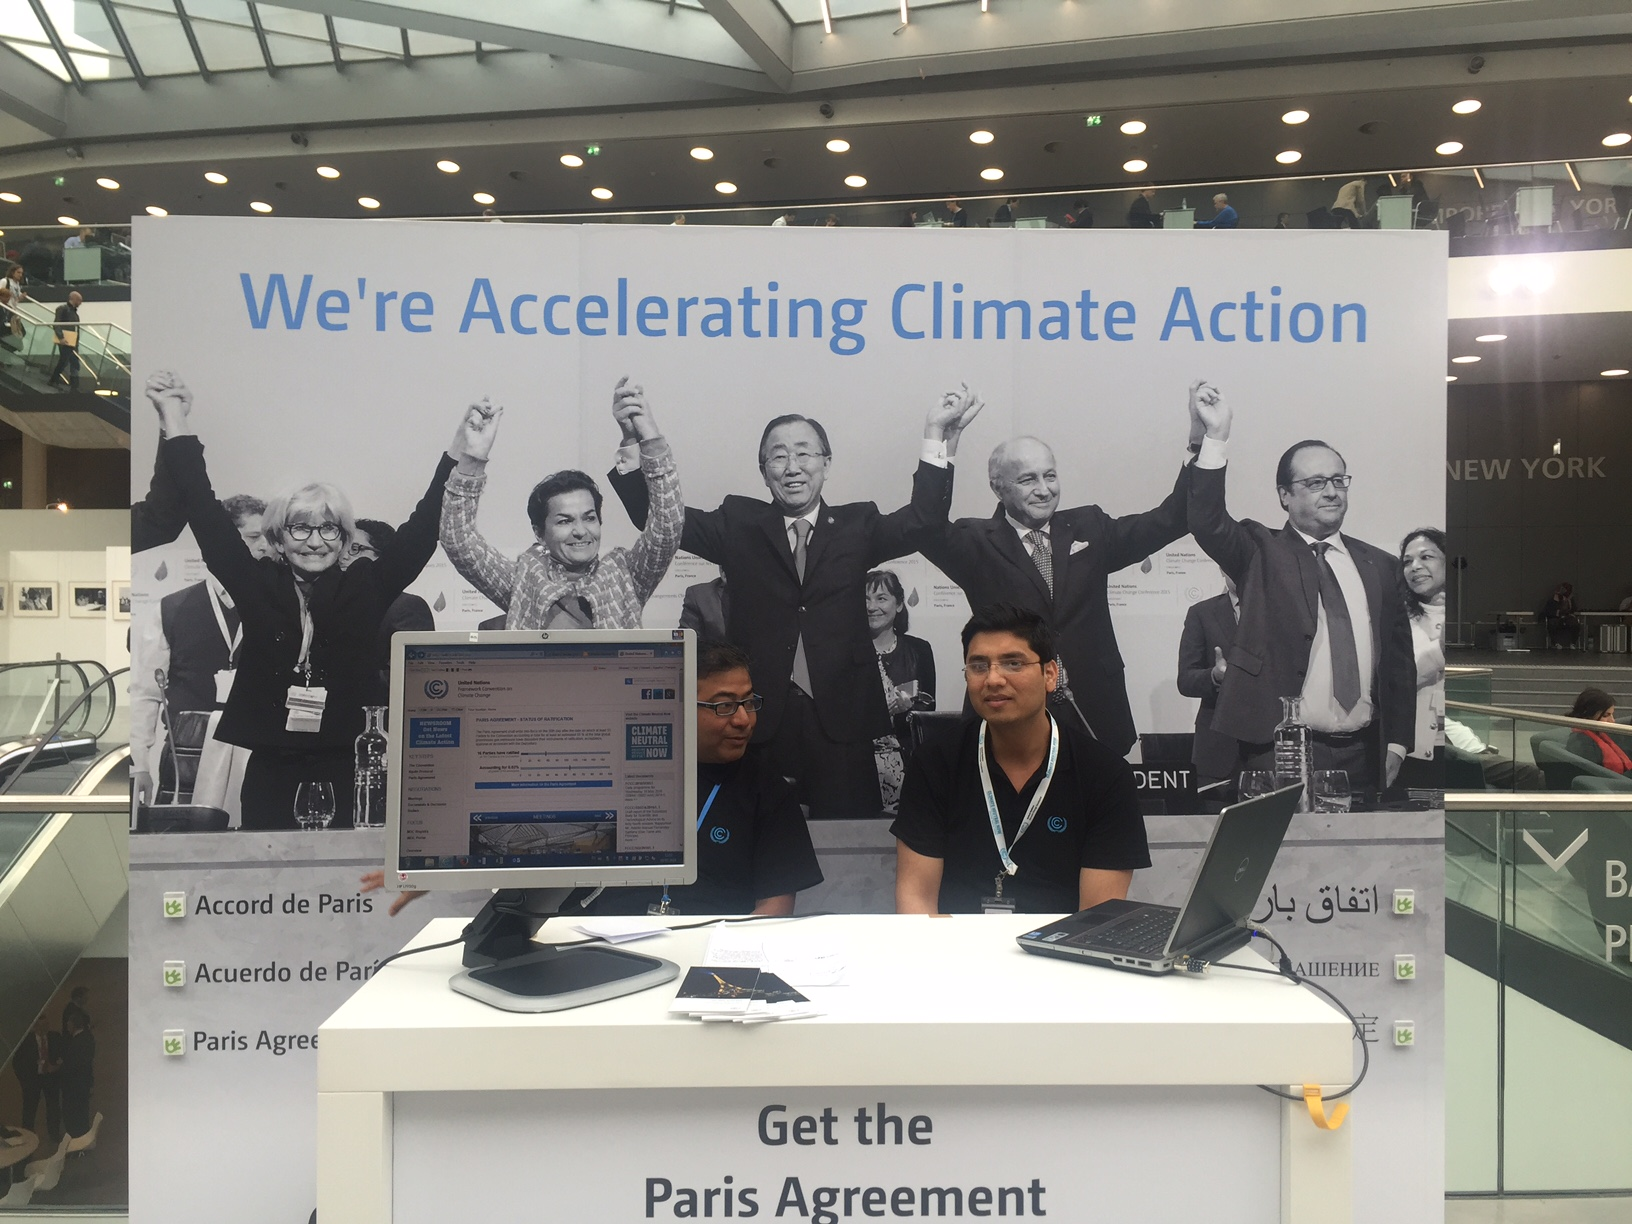 The optimism following the signing in December 2015 of the landmark Paris Agreement has waned as the world's largest carbon emitters have moved slowly to meet their Paris carbon reduction pledges. But even if those pledges were met, IPCC carbon counting loopholes could prevent the Paris Agreement from effectively curbing emissions and the worst impact of climate chaos. Credit: Justin CatanosoThe optimism following the signing in December 2015 of the landmark Paris Agreement has waned as the world's largest carbon emitters have moved slowly to meet their Paris carbon reduction pledges. But even if those pledges were met, IPCC carbon counting loopholes could prevent the Paris Agreement from effectively curbing emissions and the worst impact of climate chaos. Credit: Justin Catanoso